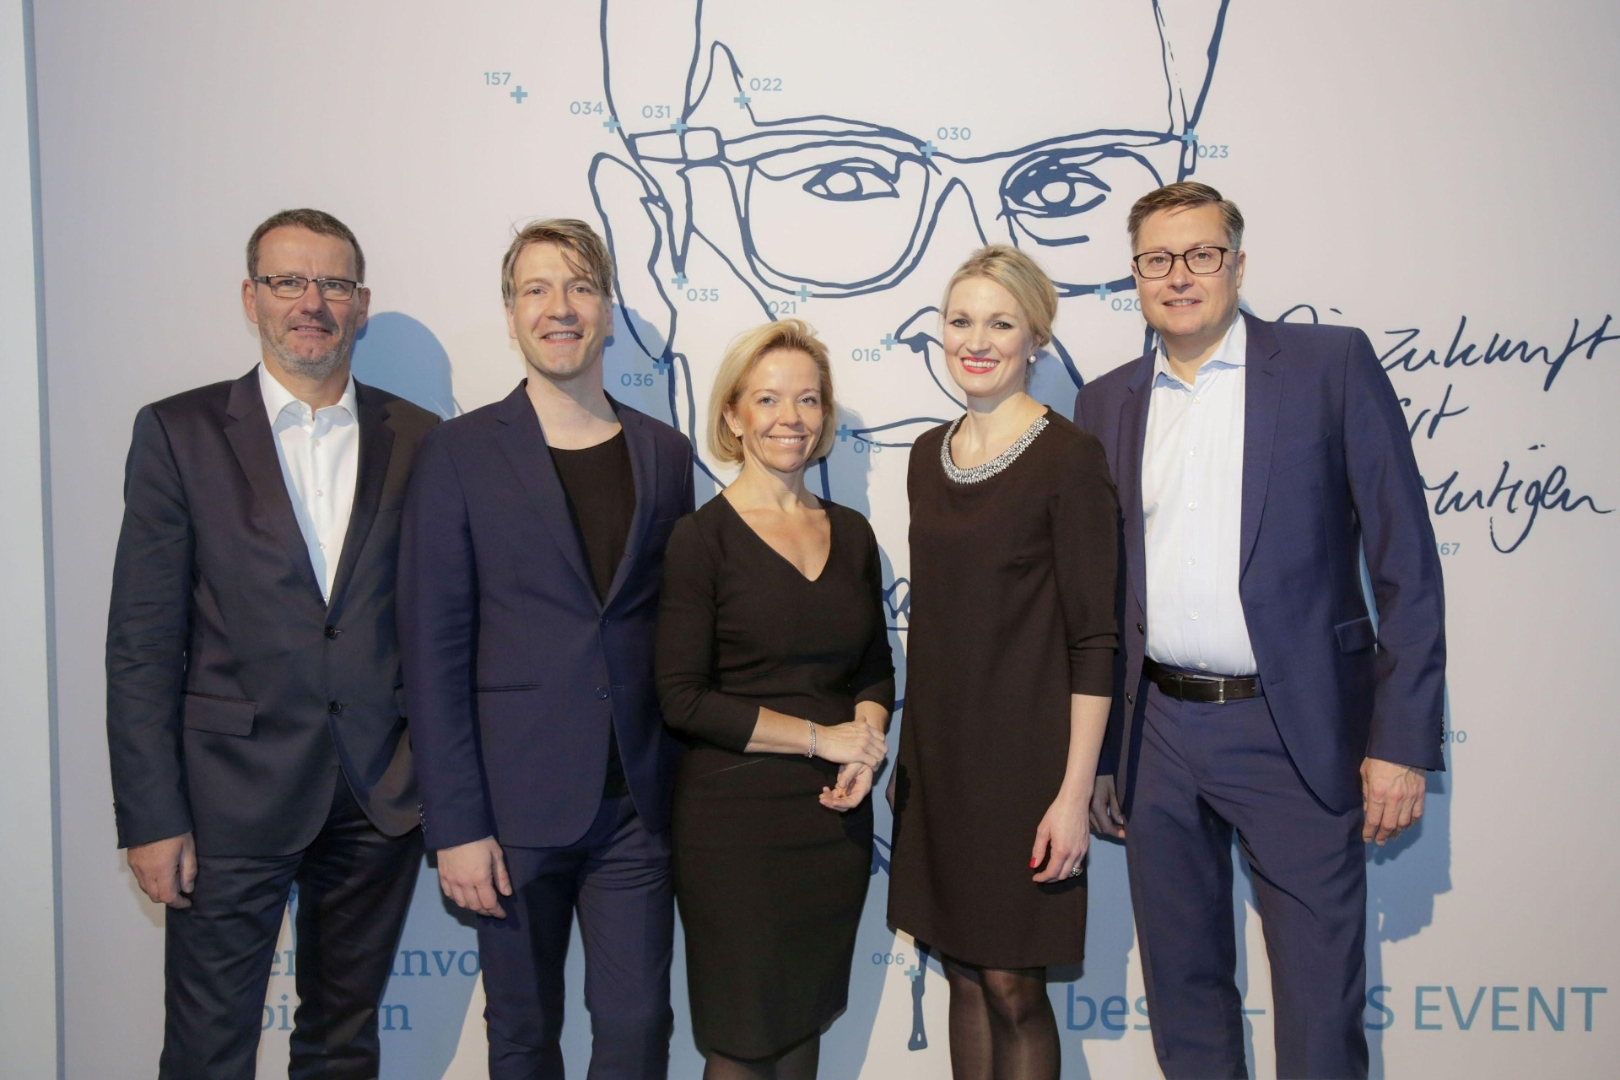 GIK-Geschäftsführer Fred Hogrefe (FUNKE MEDIENGRUPPE), Frank Vogel (Gruner + Jahr), Julia Scheel (Hubert Burda Media), Catherin Anne Hiller (Bauer Media Group) und Carsten Dorn (Axel Springer / Media Impact)